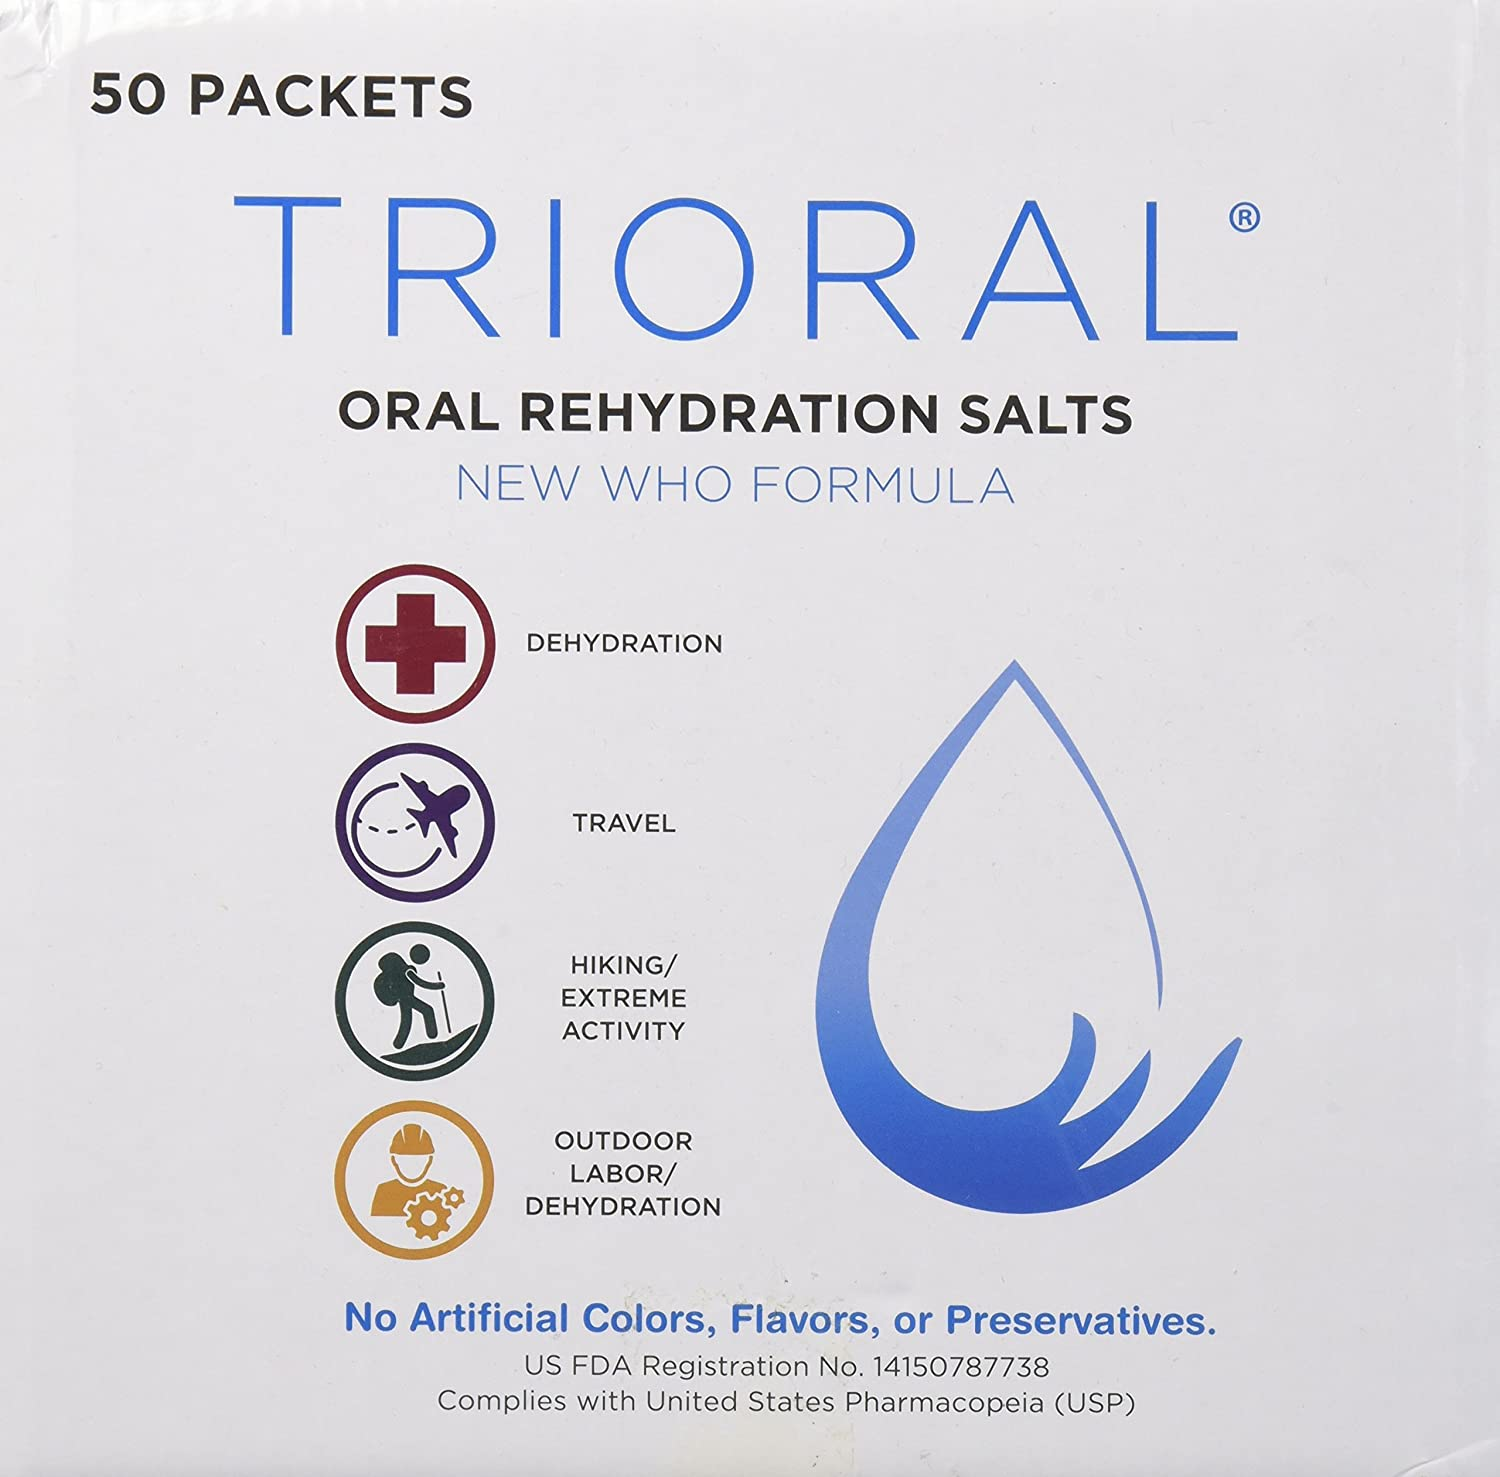 Amazon.com: Oral Rehydration Salts ORS (50, One Liter Packets/Box) World Health Organization (WHO) New Formula for Food Poisoning, Hangovers, Diarrhea, ...